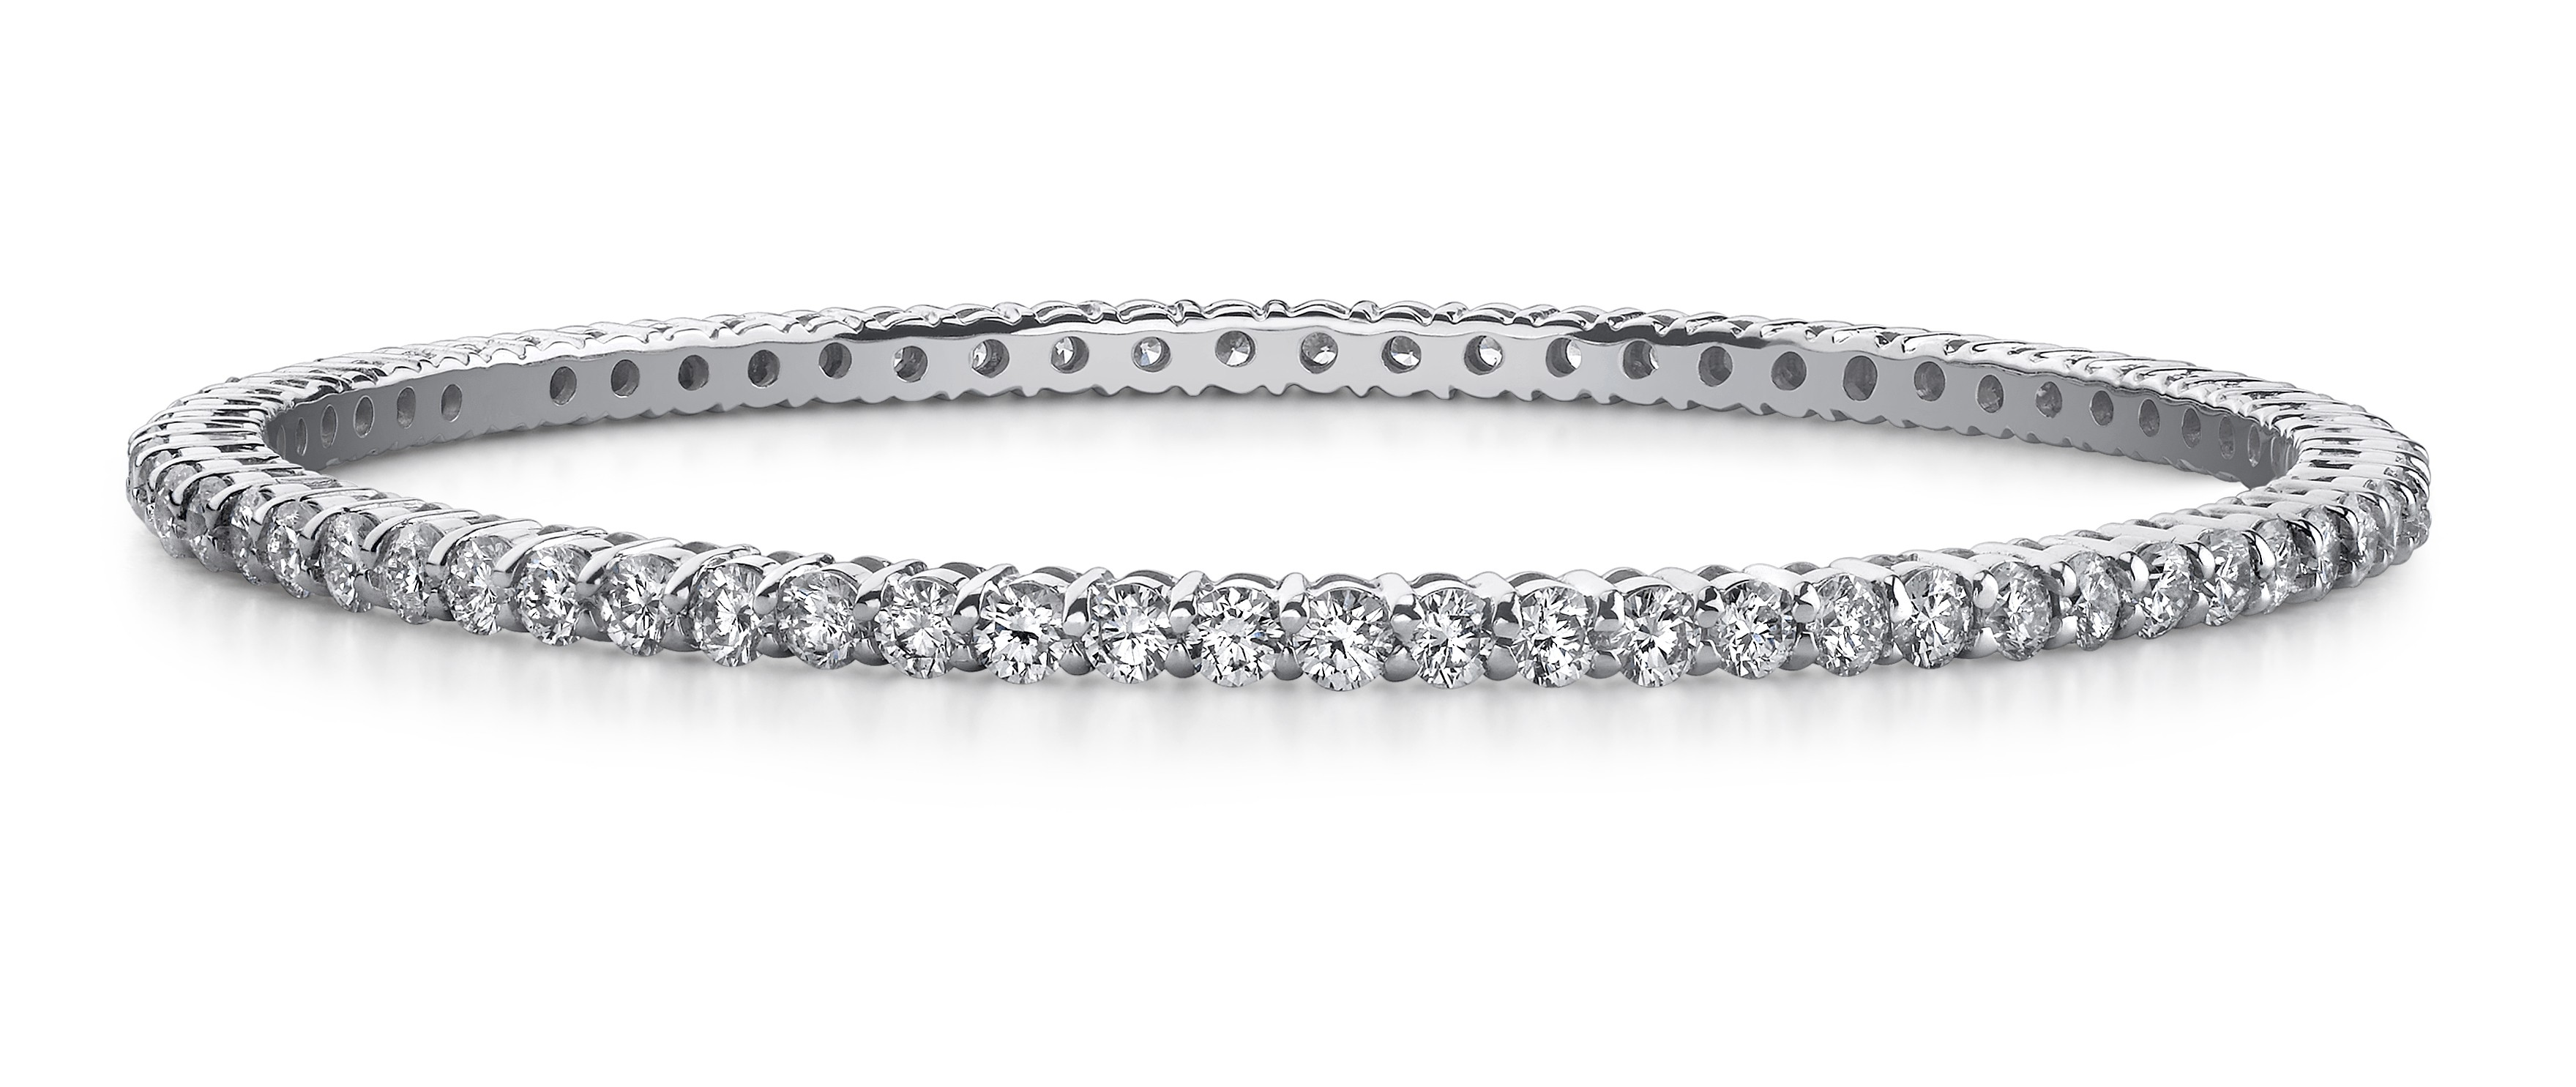 ben jeweler bridge bracelet bangle jewelry bangles diamond